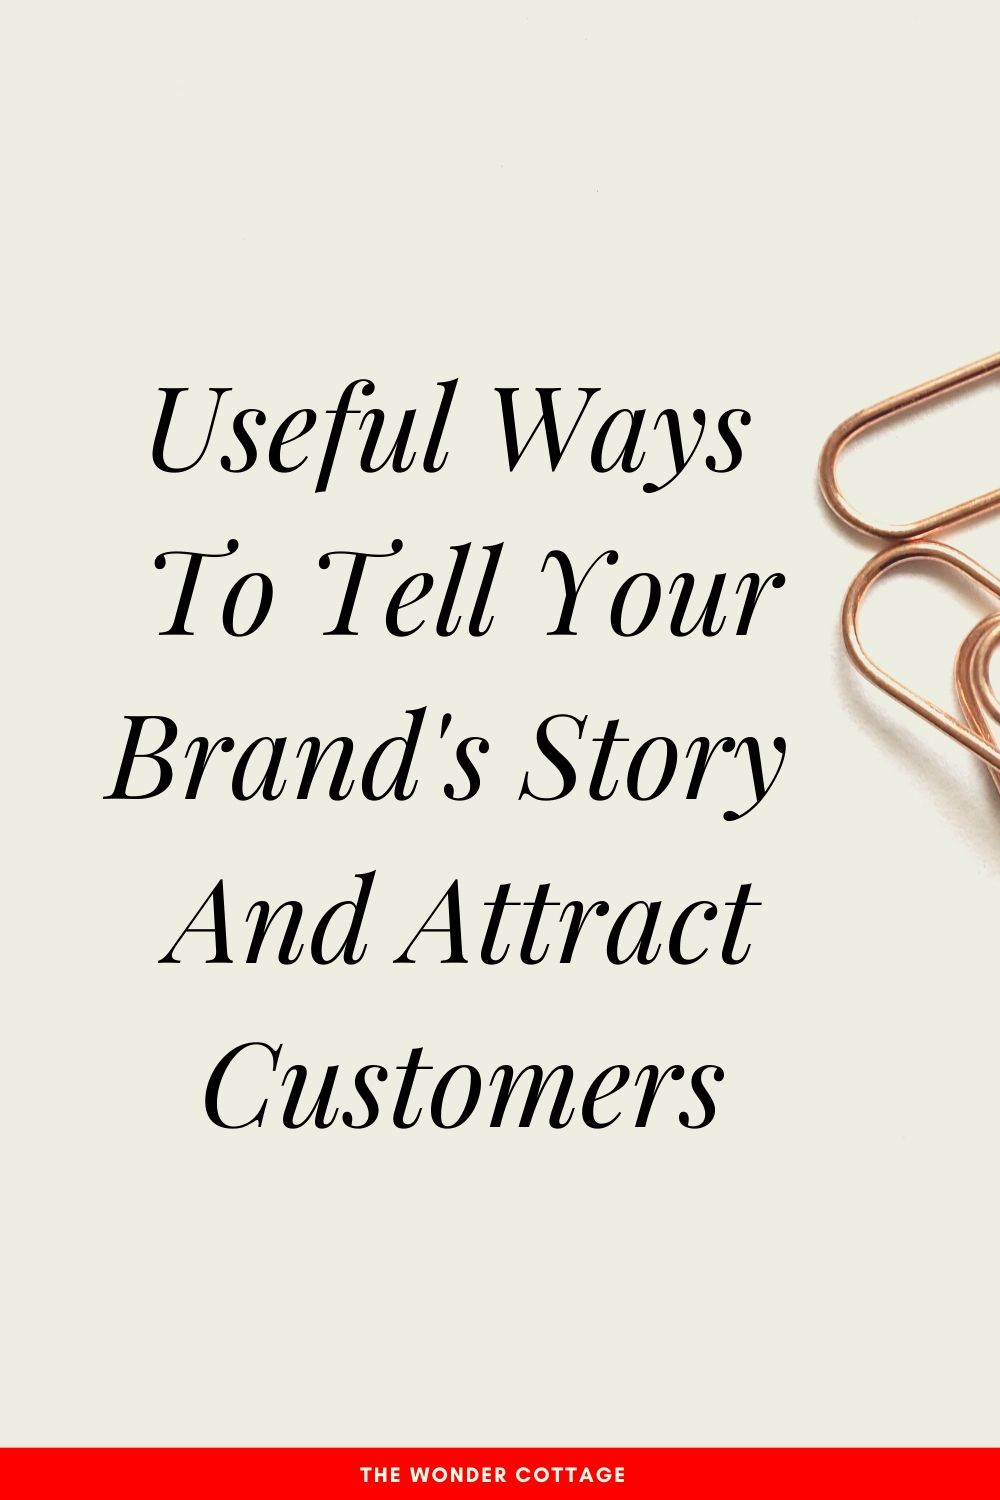 Useful ways to tell your brand's story